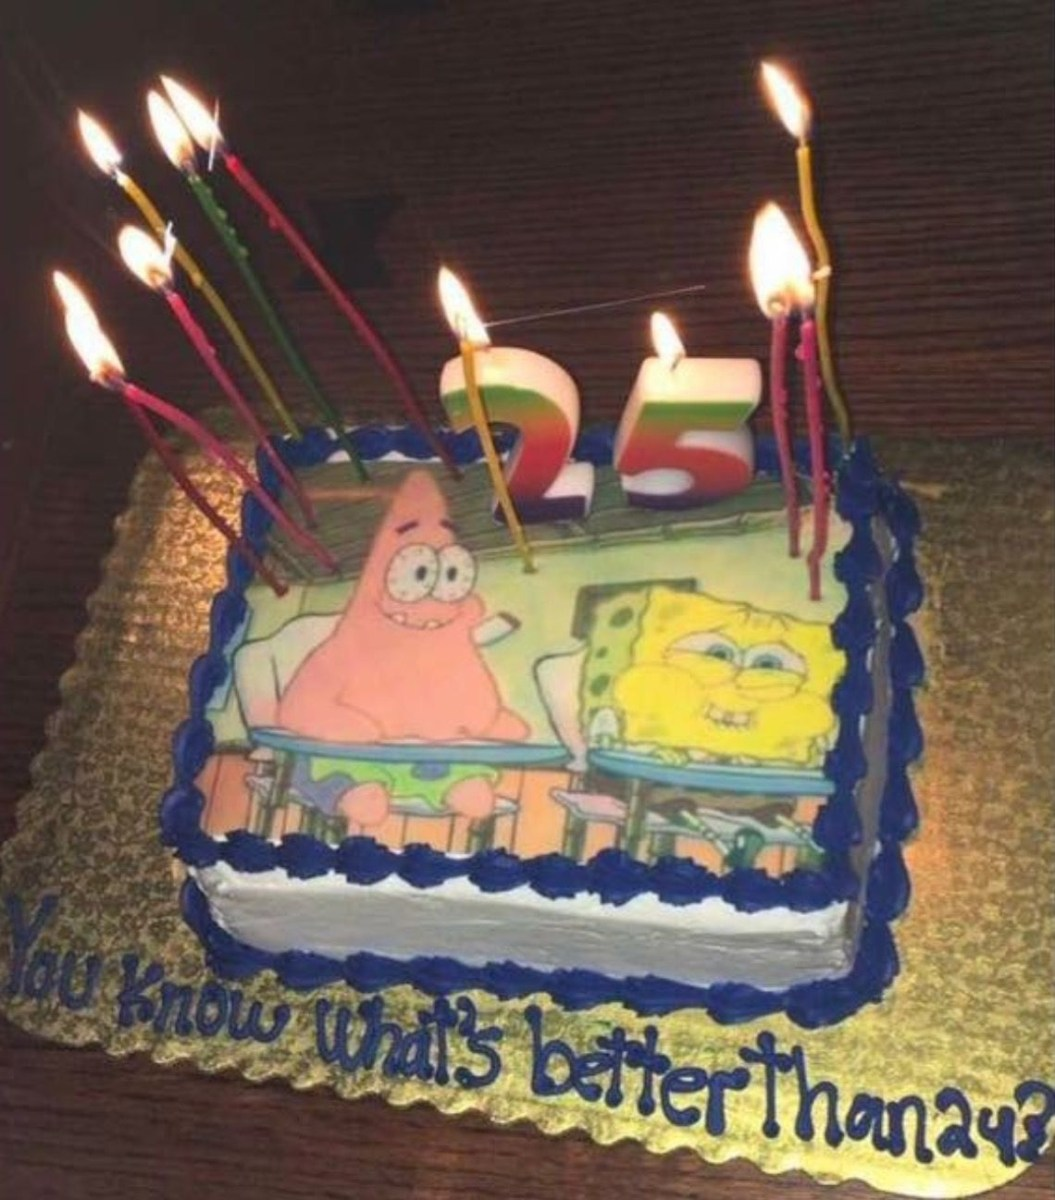 Amazing Funny Birthday Cakes For Adults 25Th Birthday Cake Spongebob Funny Birthday Cards Online Alyptdamsfinfo